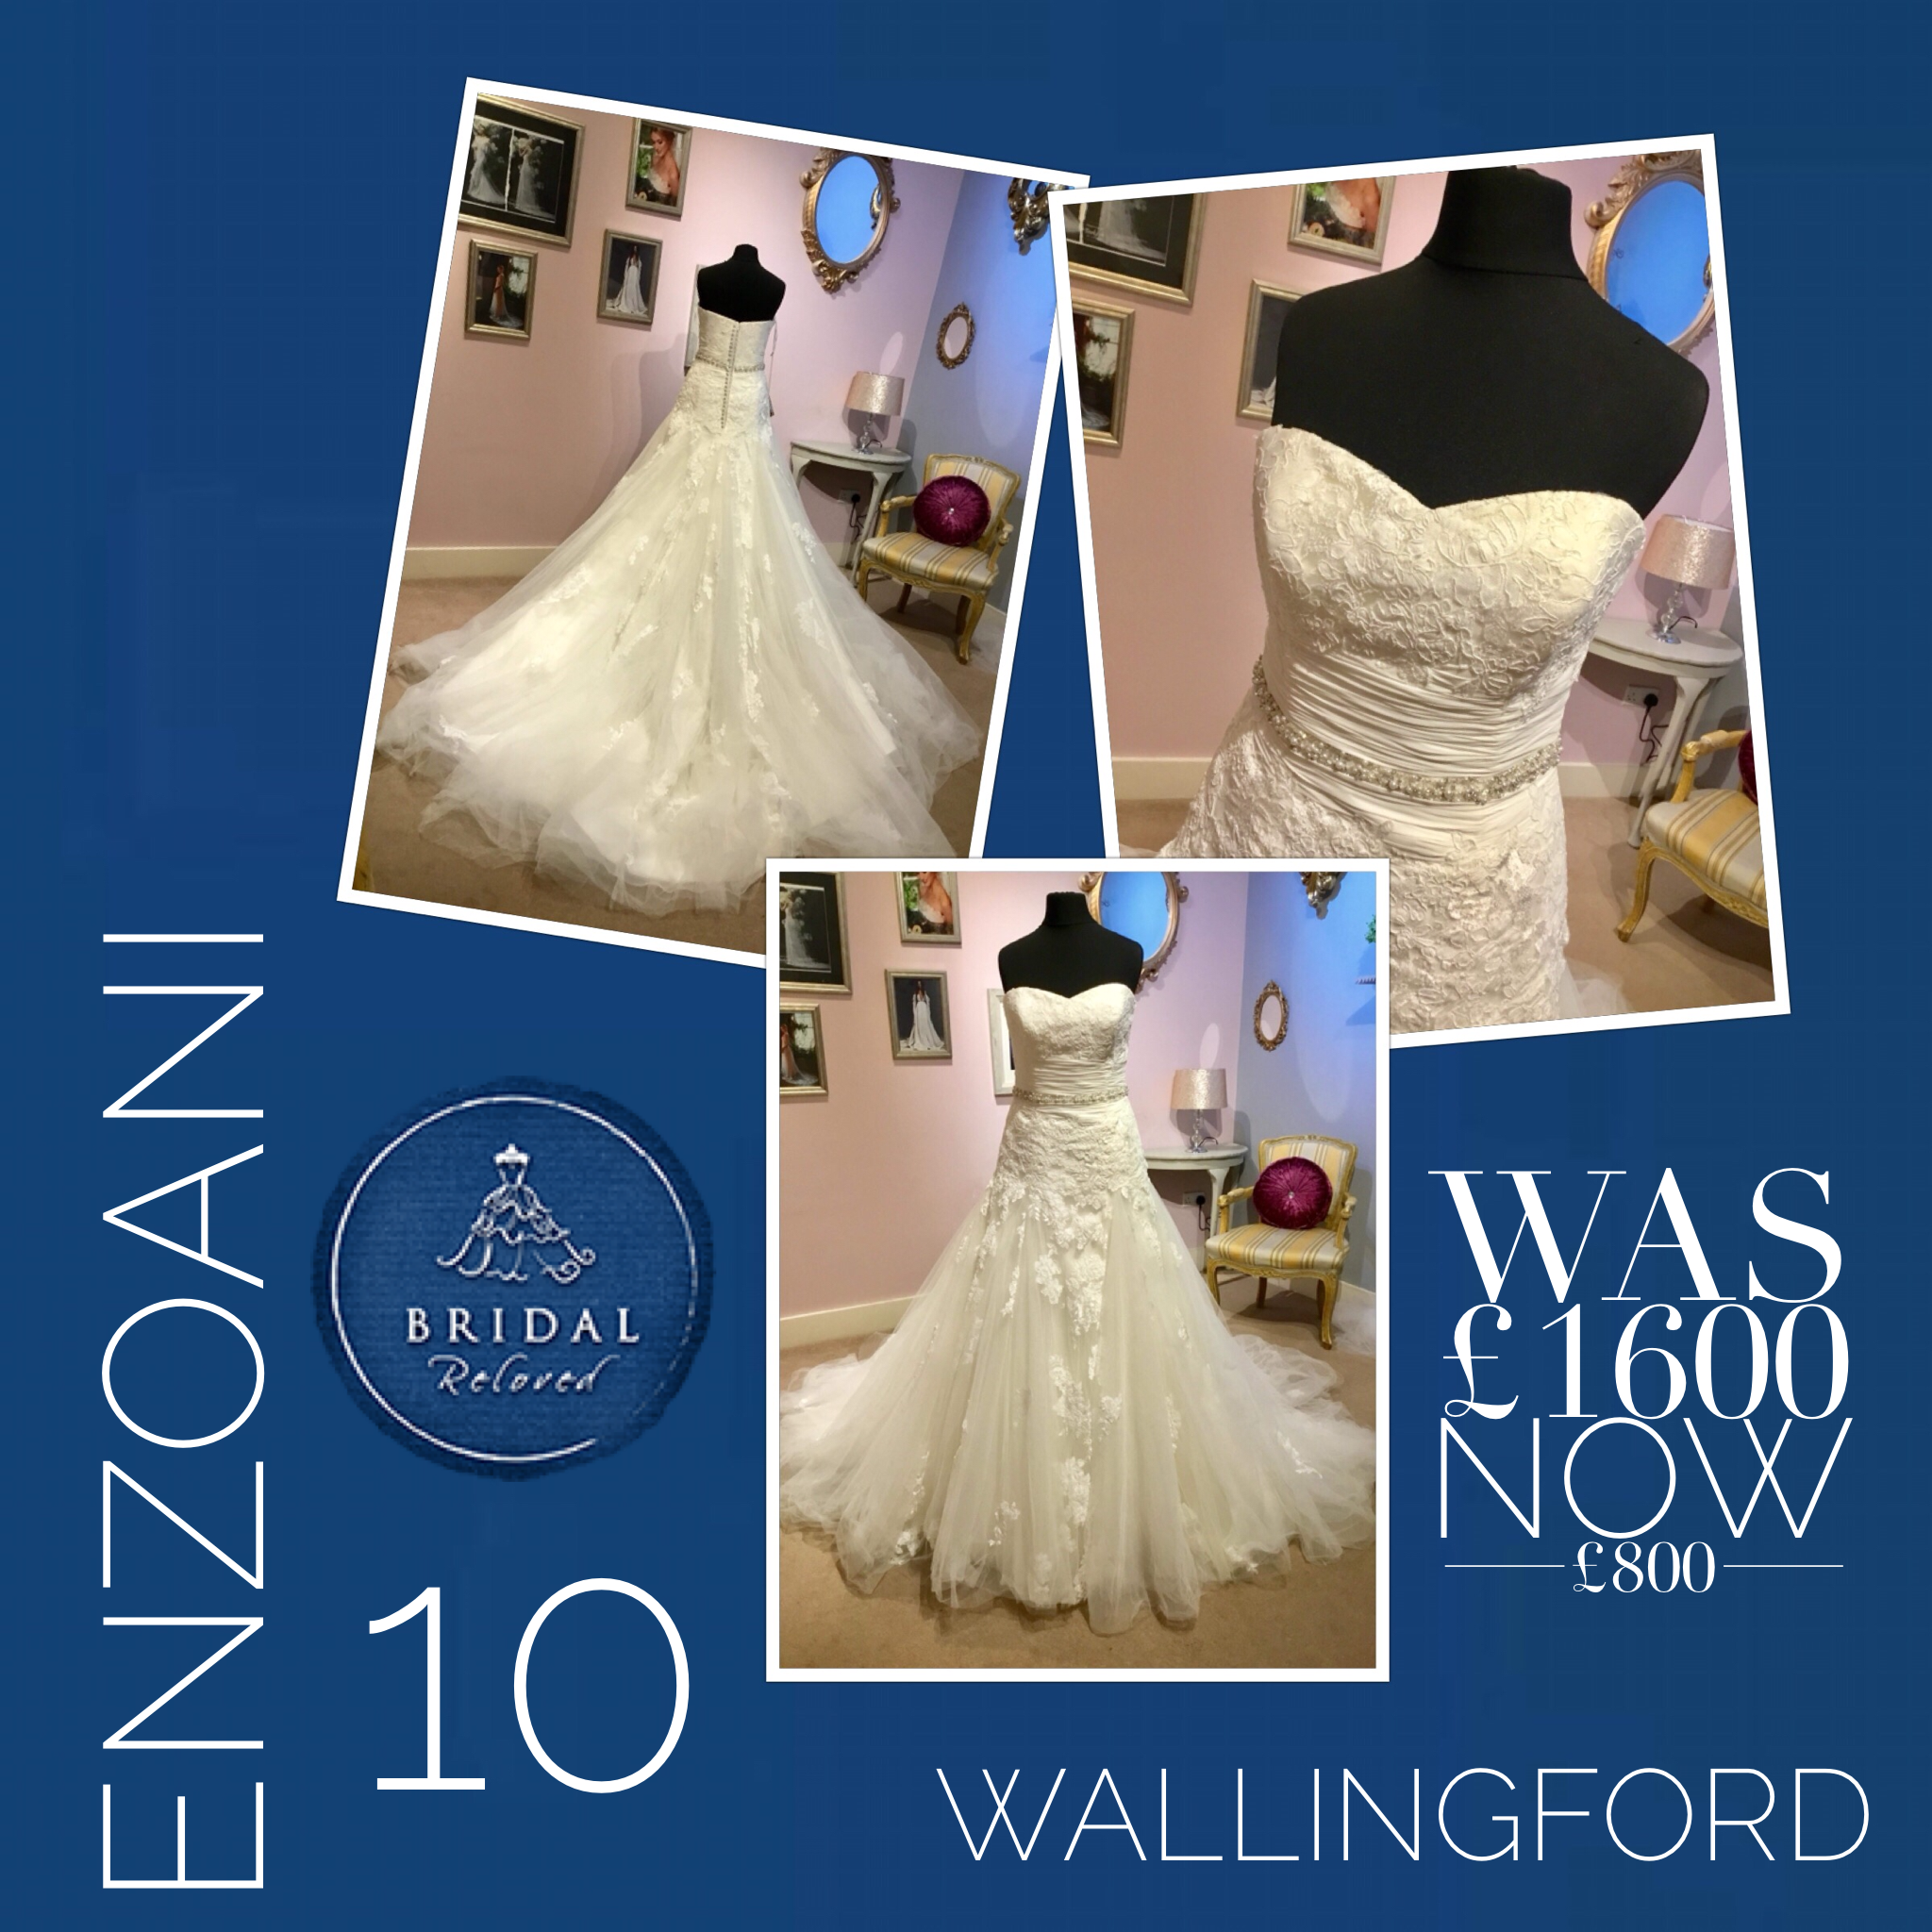 ac177e37a05ad 💓New Arrivals!💓 This stunning dress by @enzoani is now available in our  award winning boutique ❤ Get in touch to book your private appointment ...